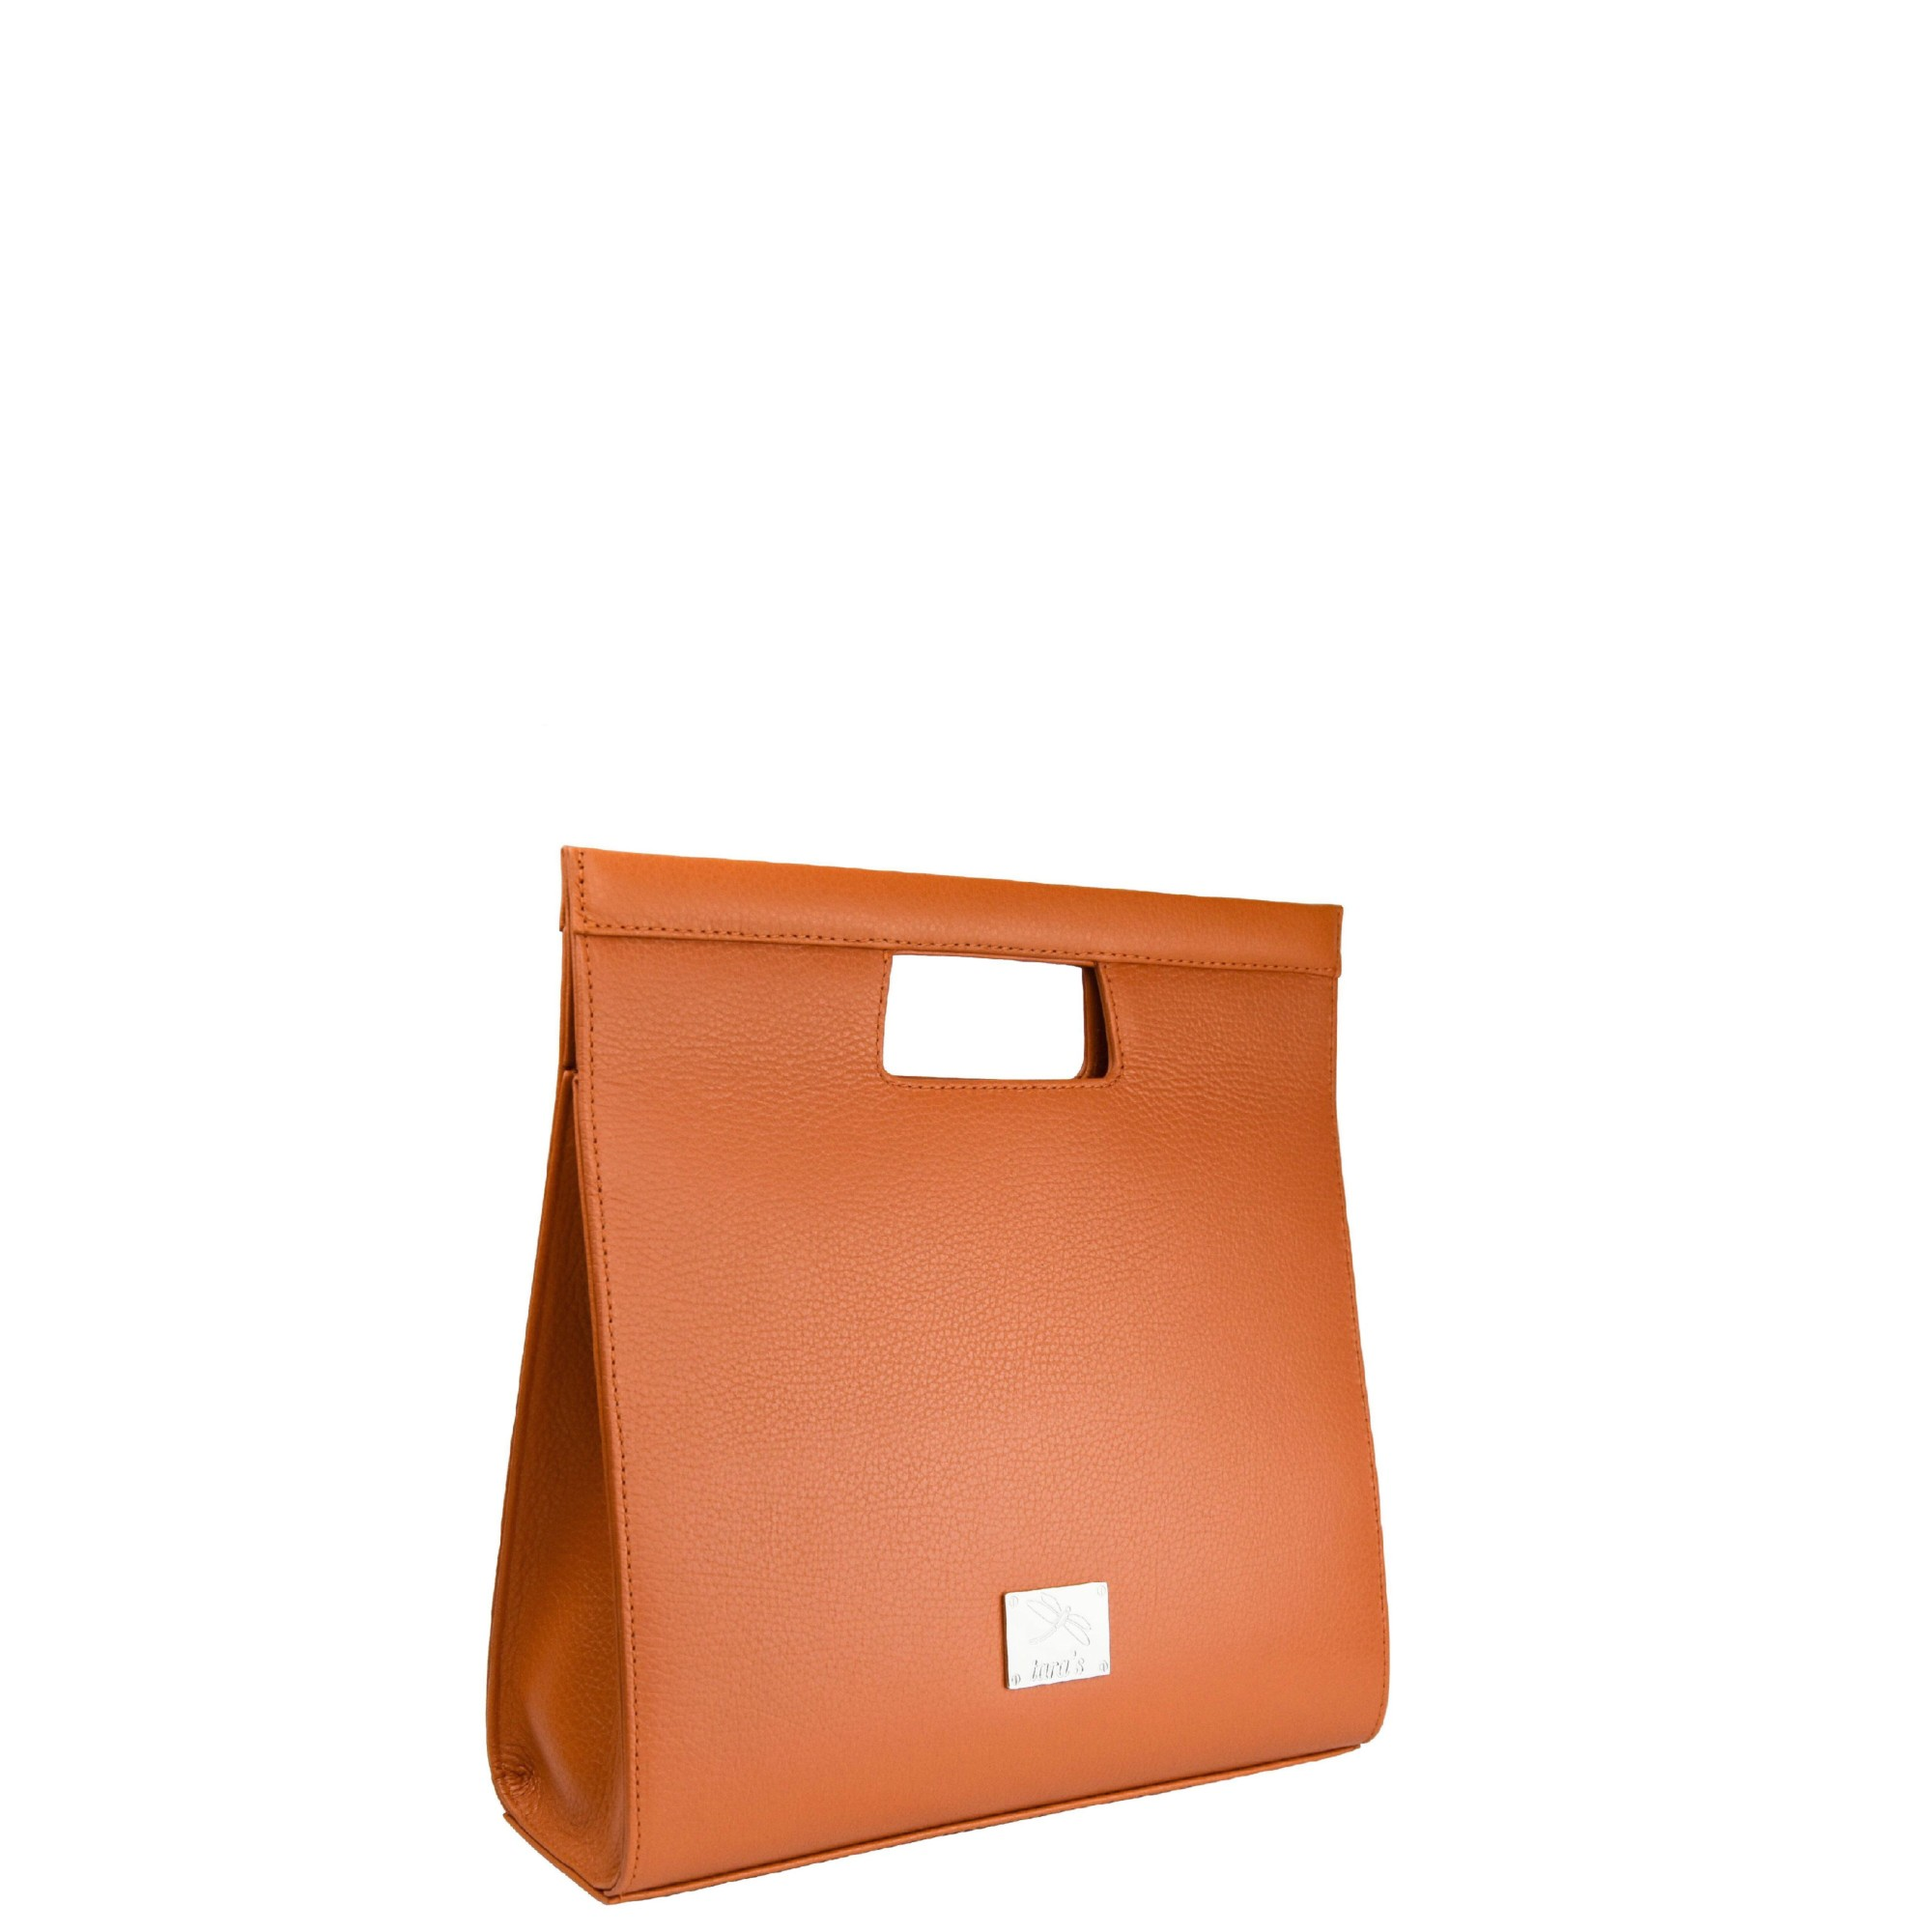 Chicago Handbag Rigid Orange